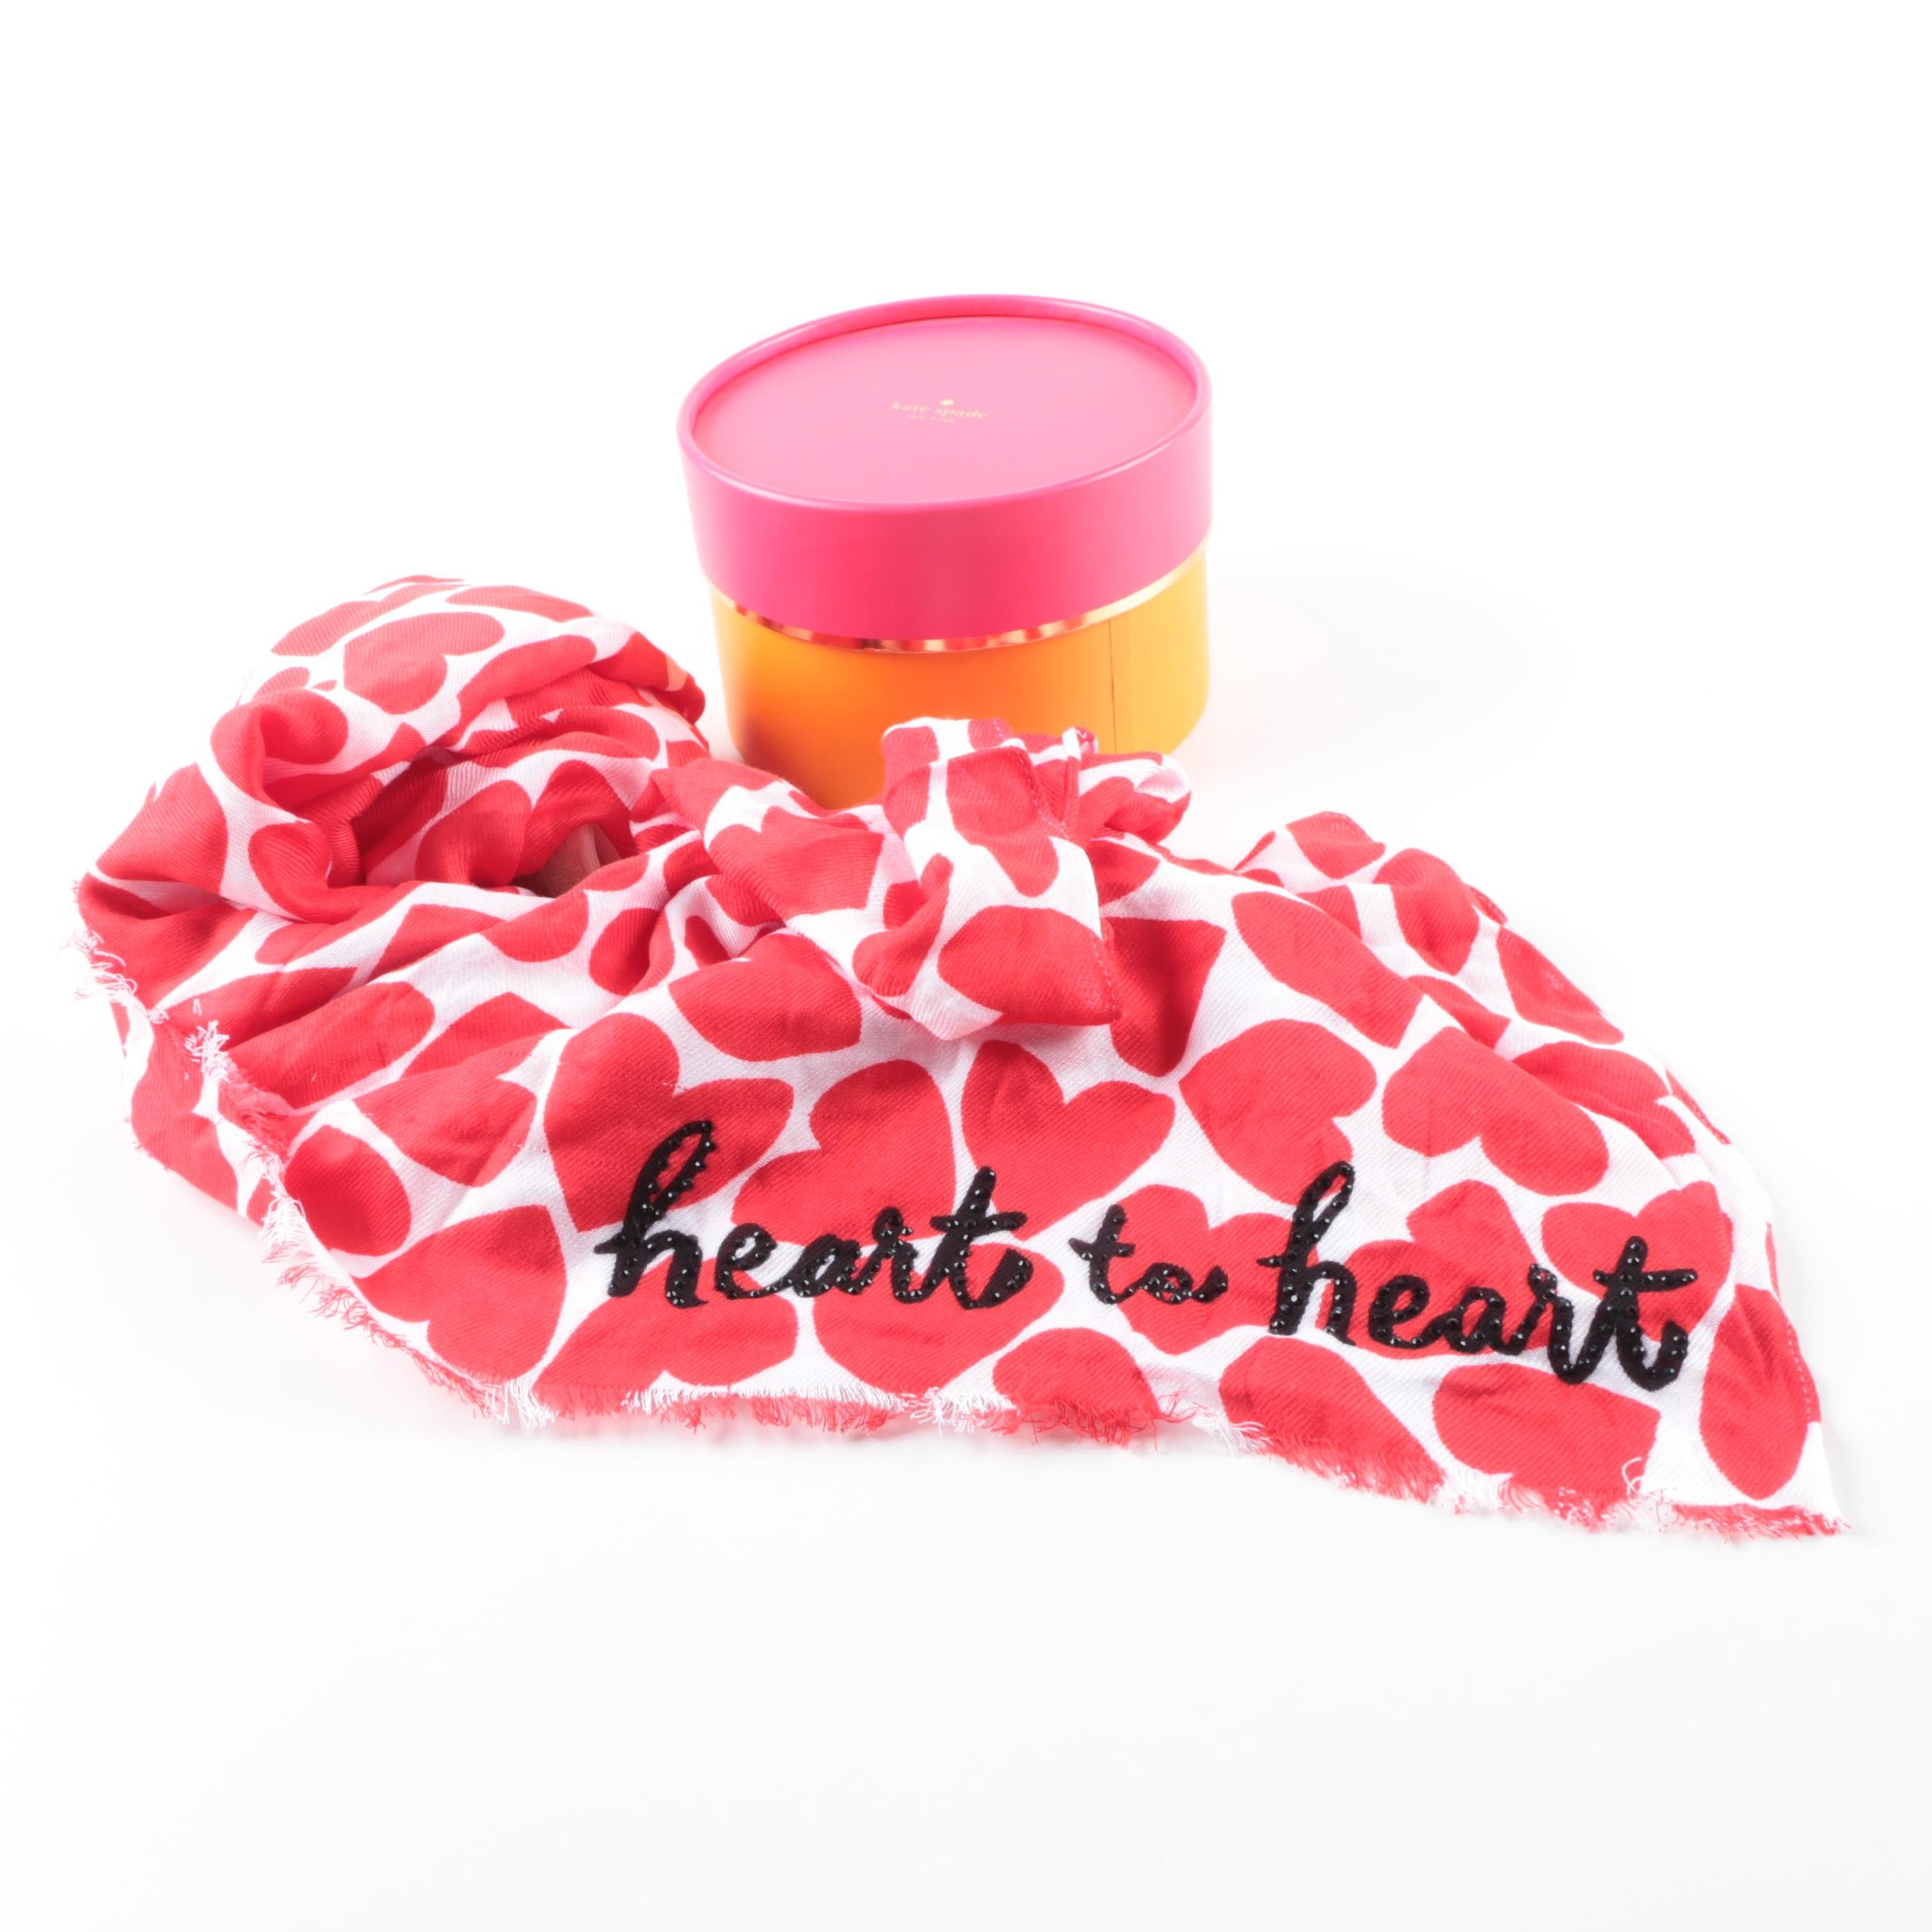 Kate Spade Heart to Heart Twill Scarf